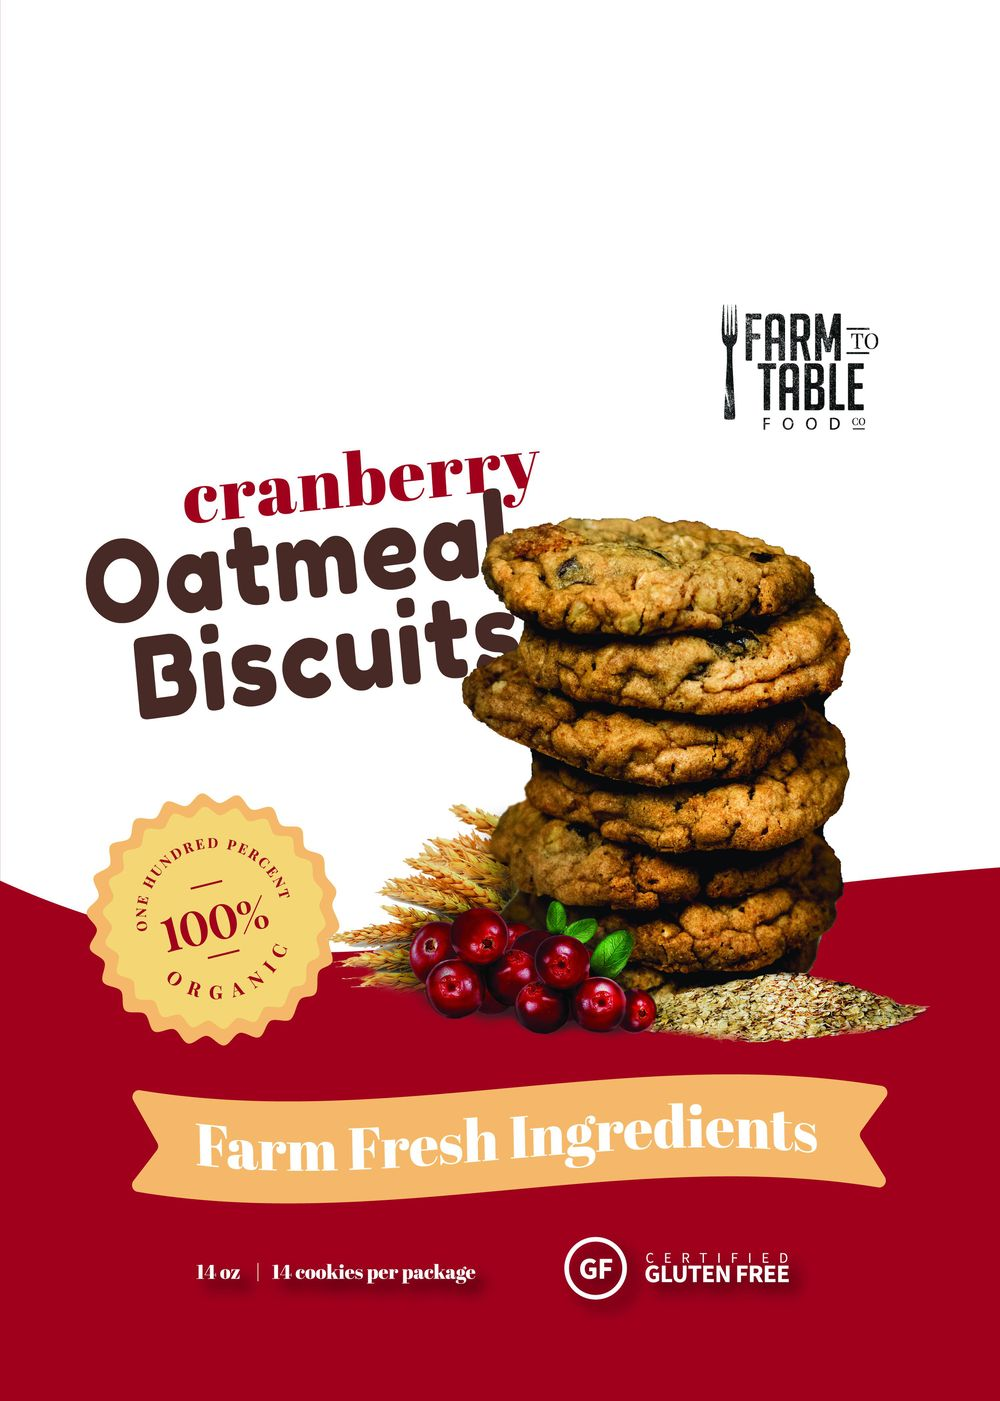 Cranberry Oatmeal Biscuits - image 1 - student project